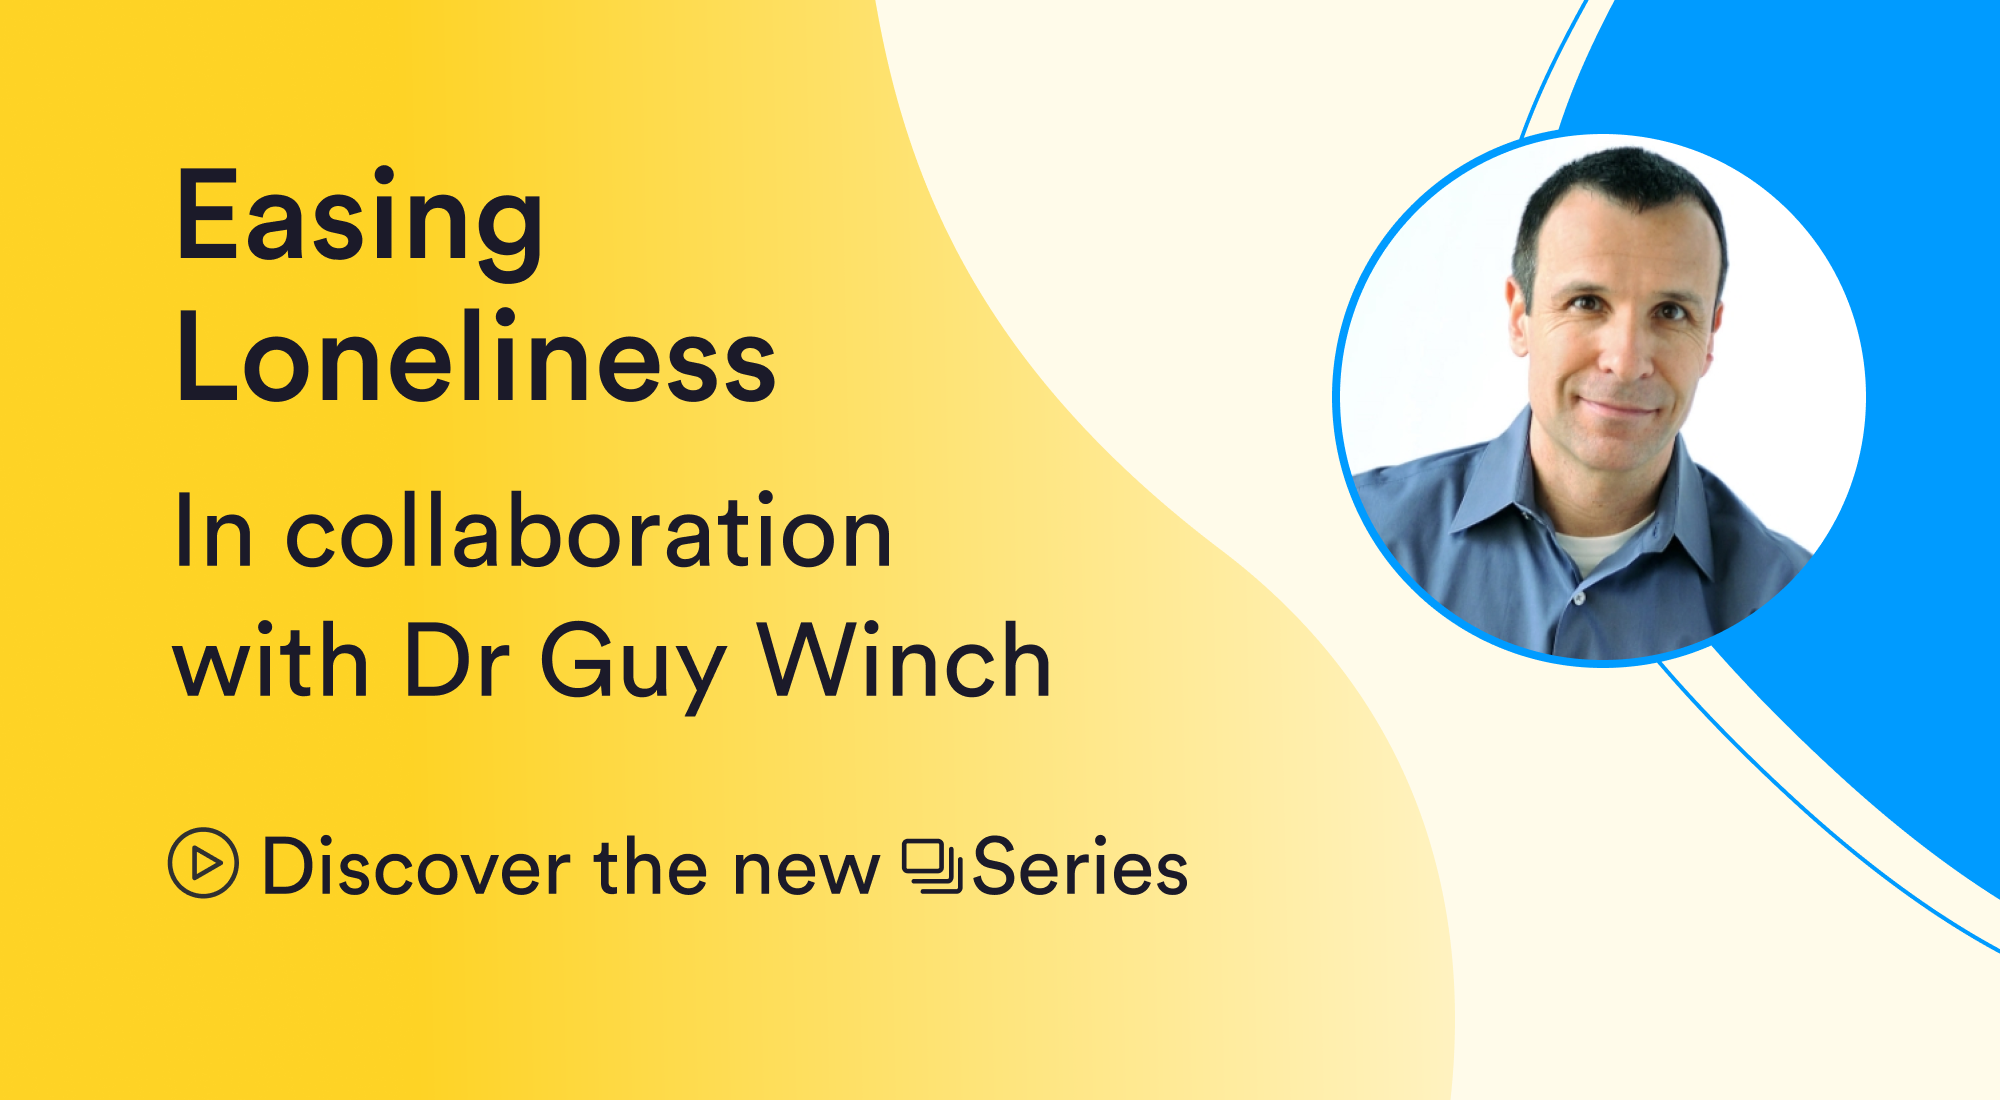 Easing Loneliness with Dr Guy Winch